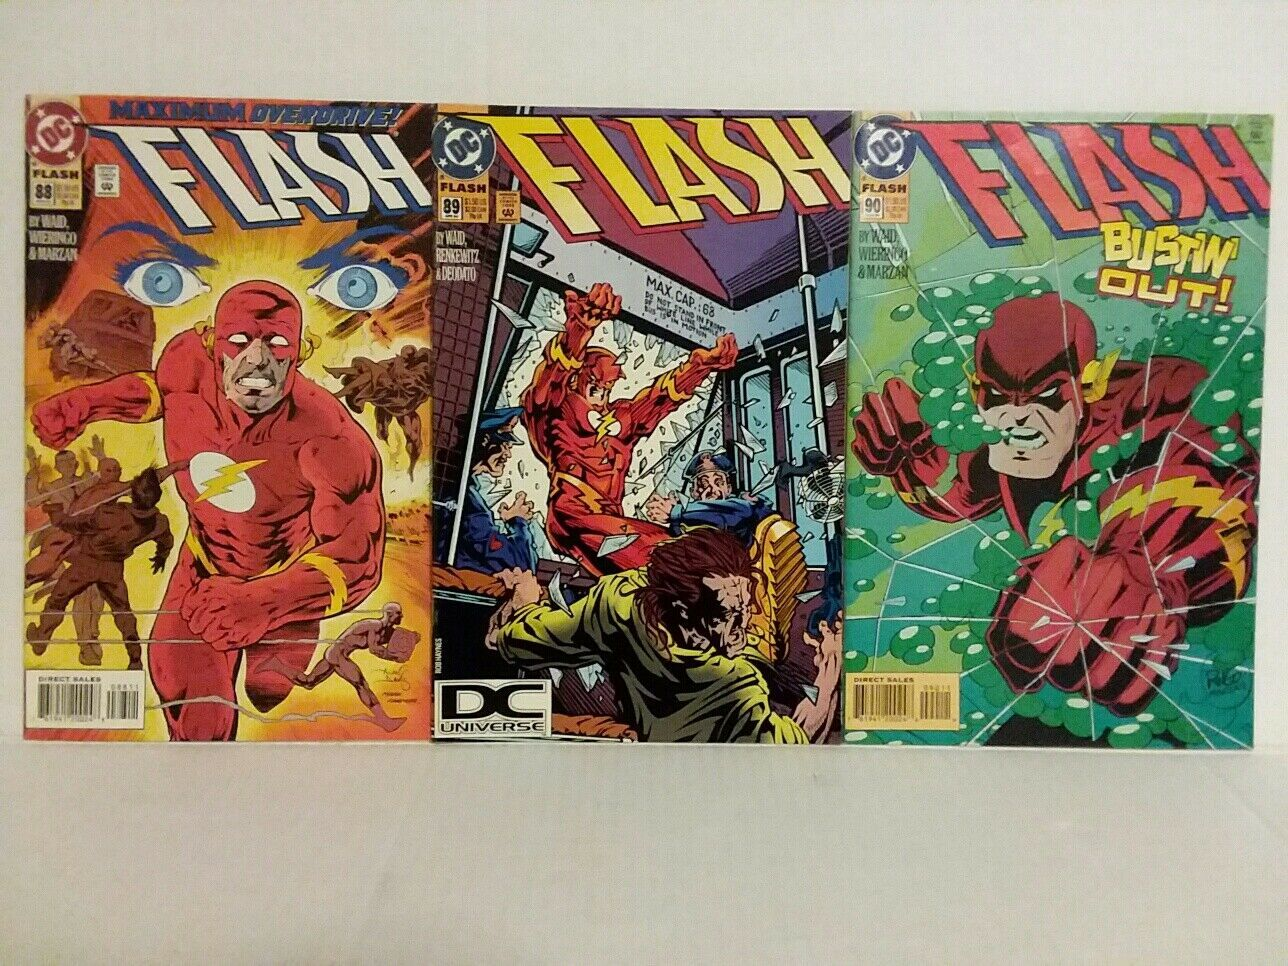 THE FLASH #88 - 90 - WAID AND DEODATO - FREE SHIPPING